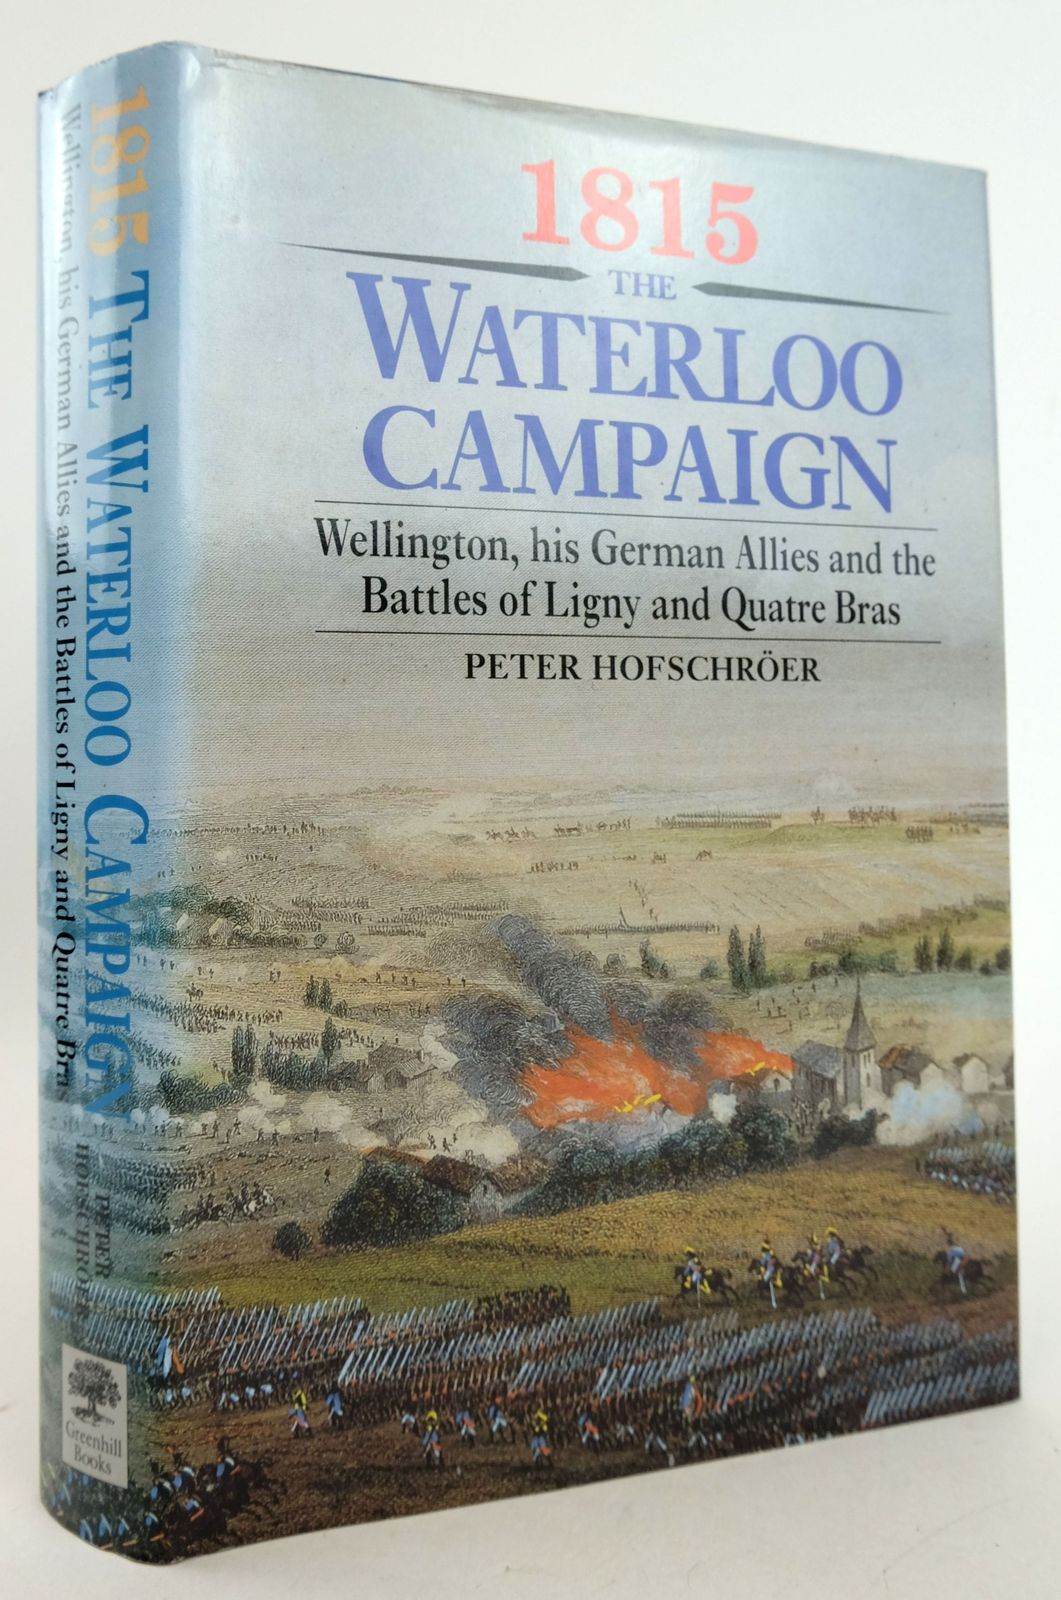 Photo of 1815 THE WATERLOO CAMPAIGN written by Hofschroer, Peter published by Greenhill Books (STOCK CODE: 1819493)  for sale by Stella & Rose's Books